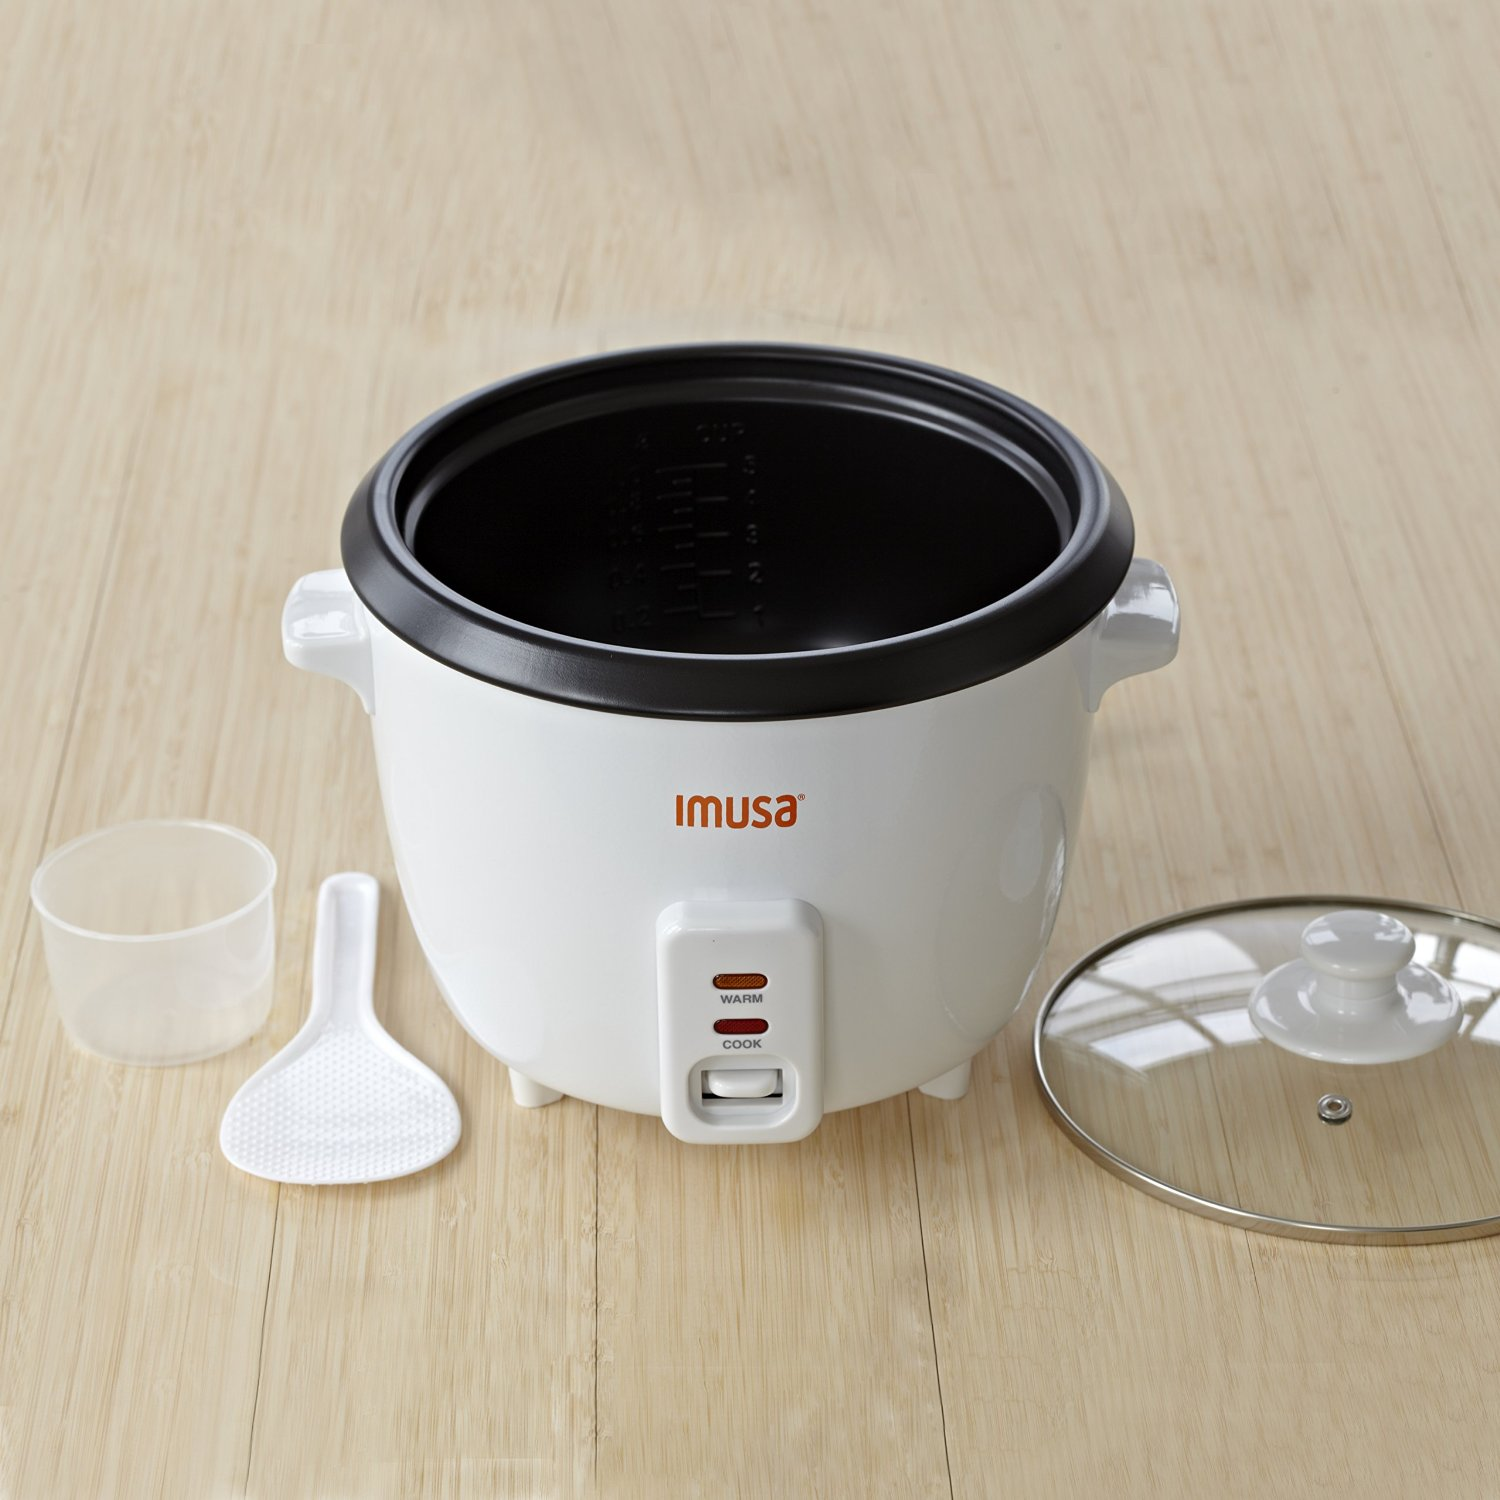 Imusa Rice Cooker